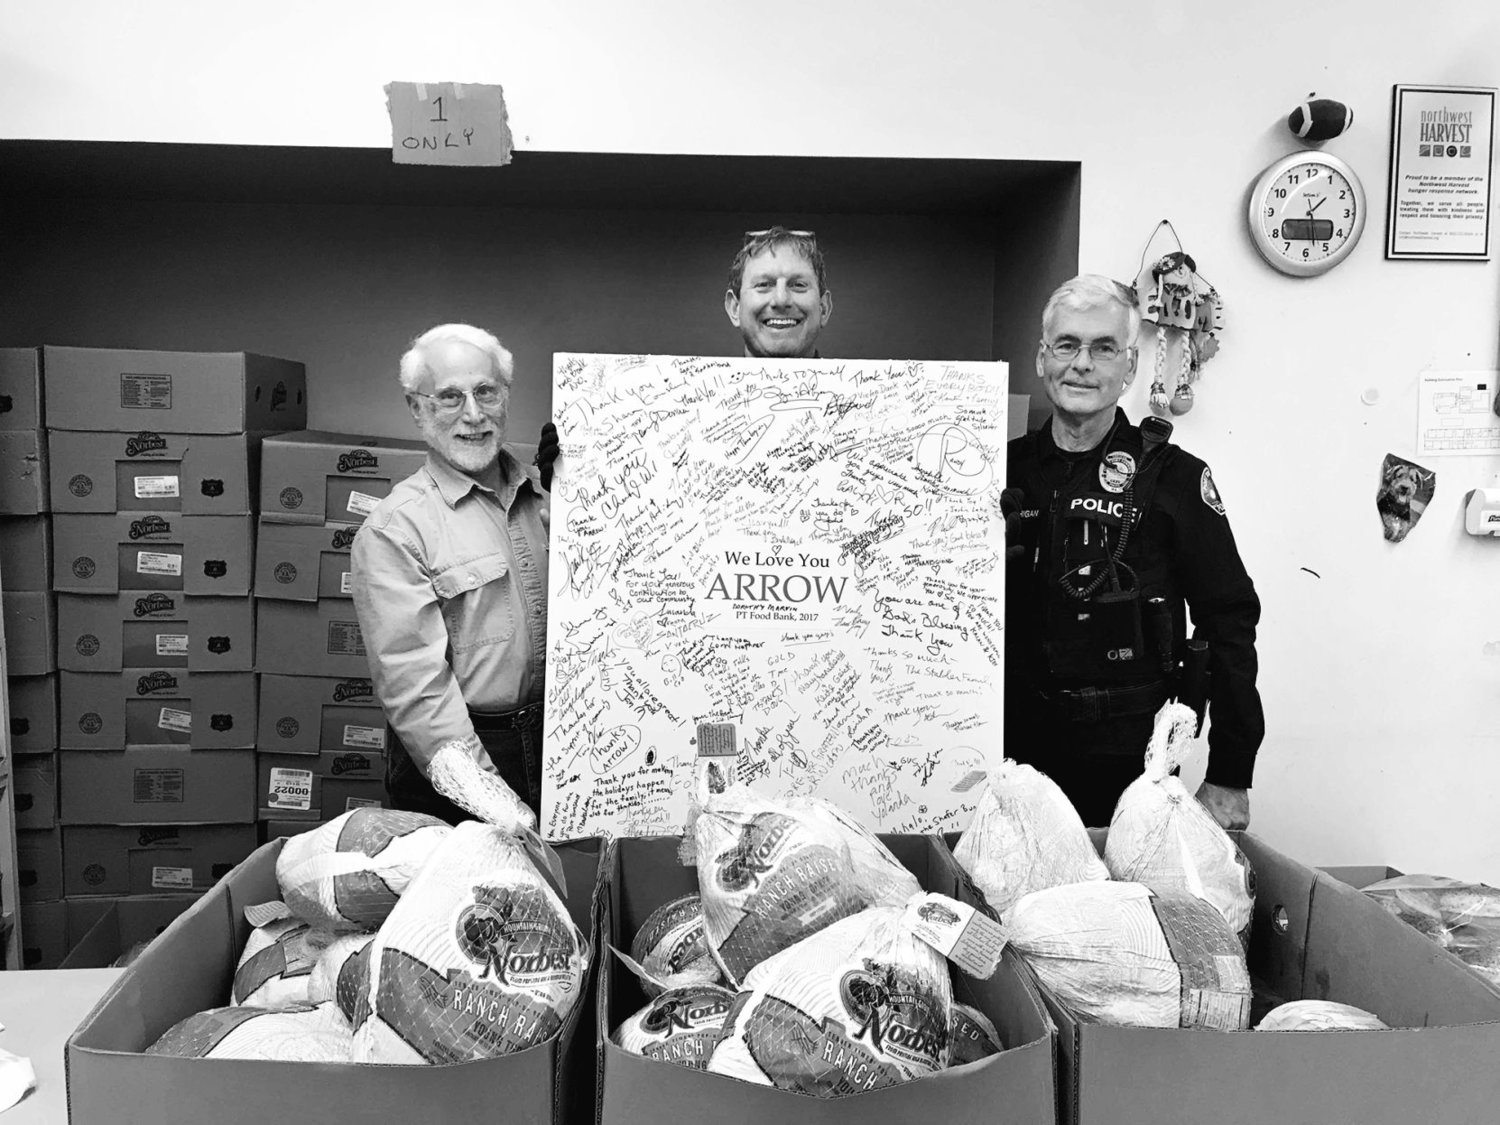 Earll Murman, Arran Stark and Port Townsend police Officer Bill Corrigan stand behind artwork thanking Arrow Lumber for donating turkeys for eight years in a row. Photo courtesy Earll M. Murman